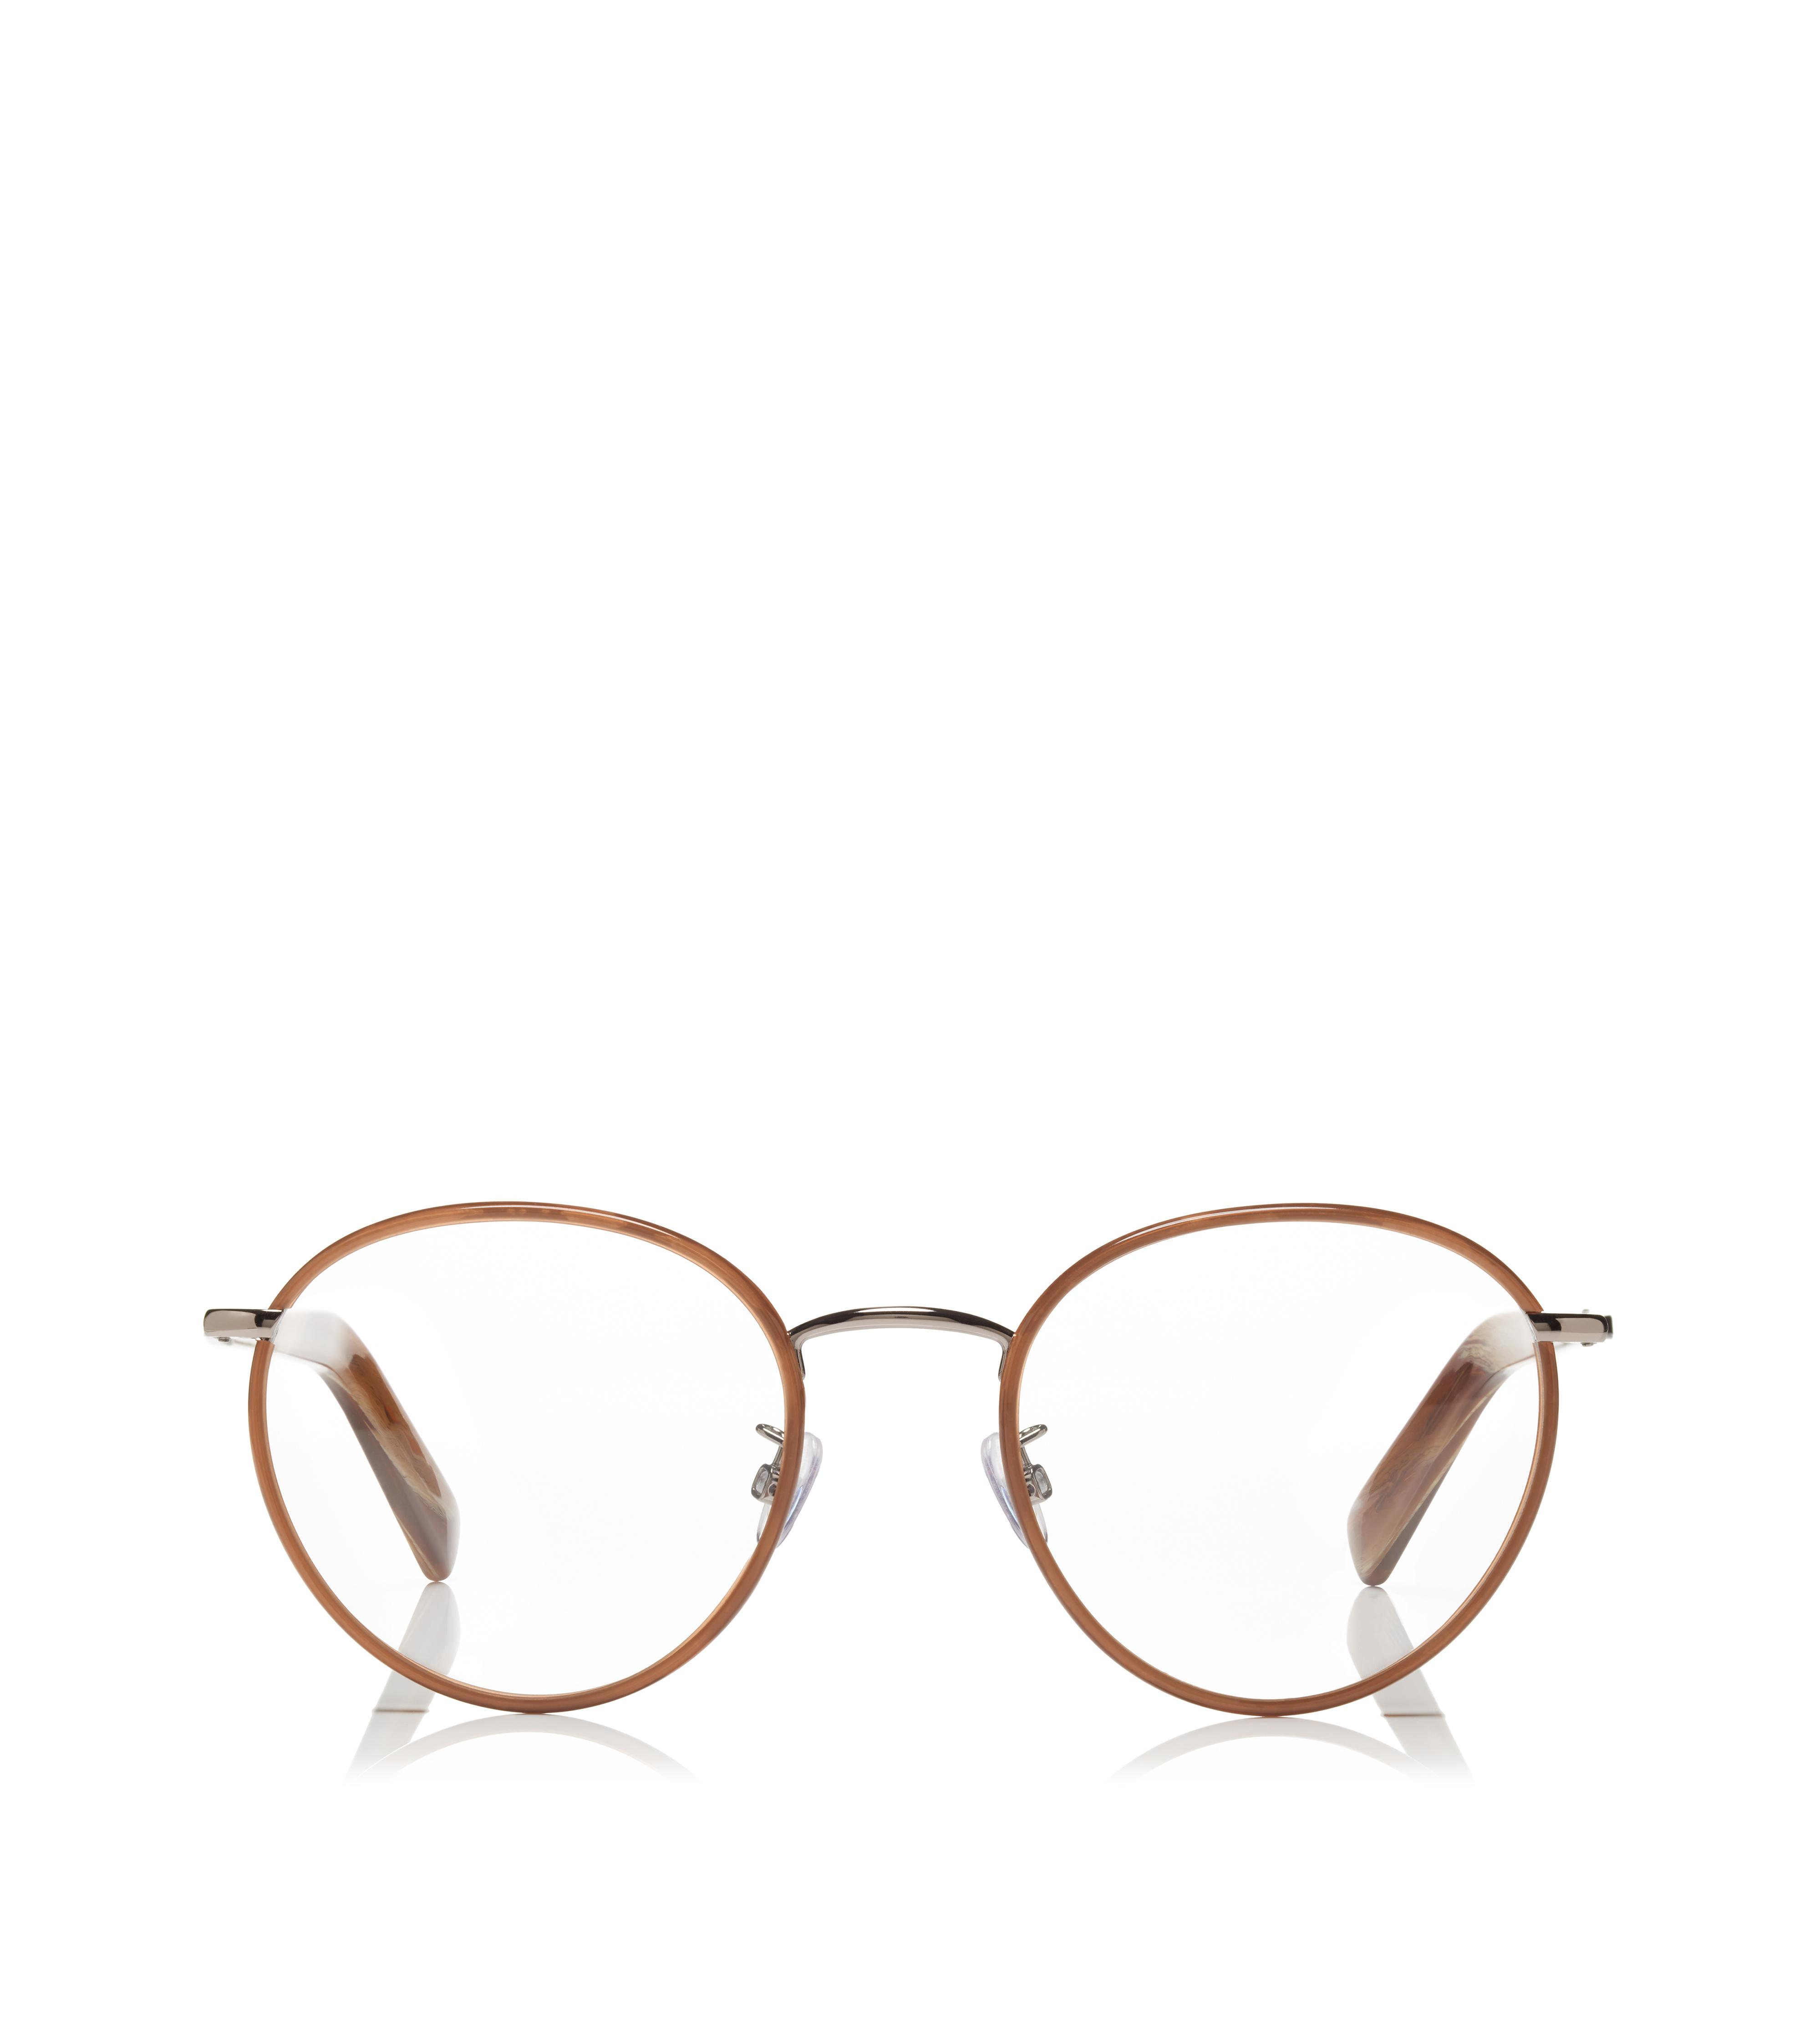 Designer Eyeglass Frames Tom Ford : Designer Optical Eyeglass Frames for Men TOM FORD